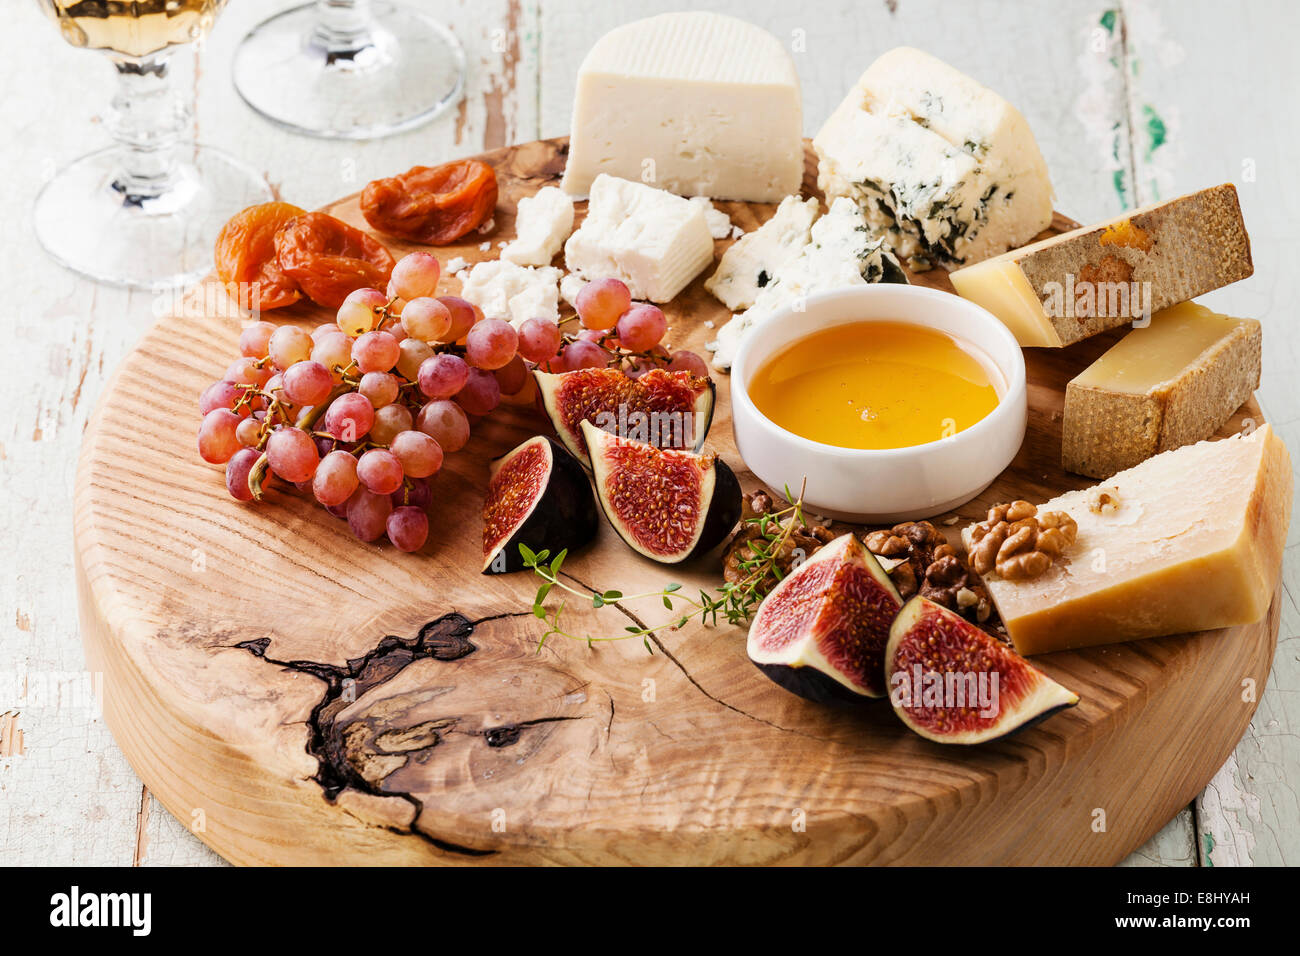 Cheese plate Assortment of various types of cheese on wooden cutting board Stock Photo